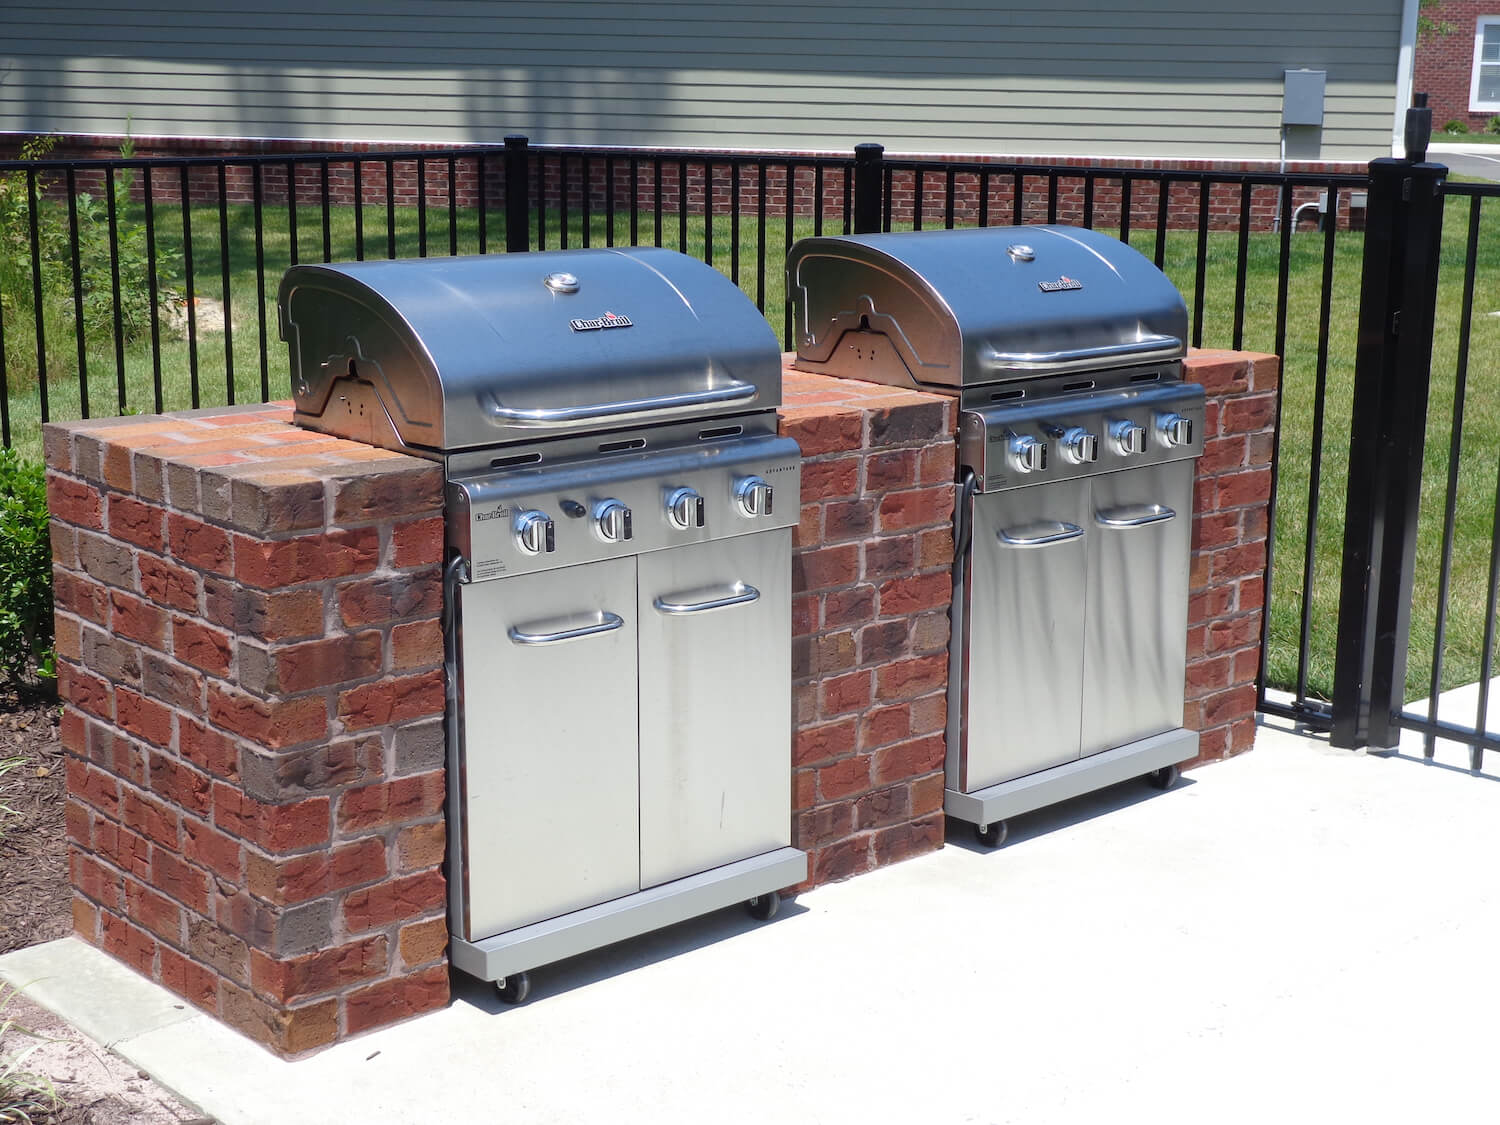 Built-in stainless steel gas grills with four burners each.